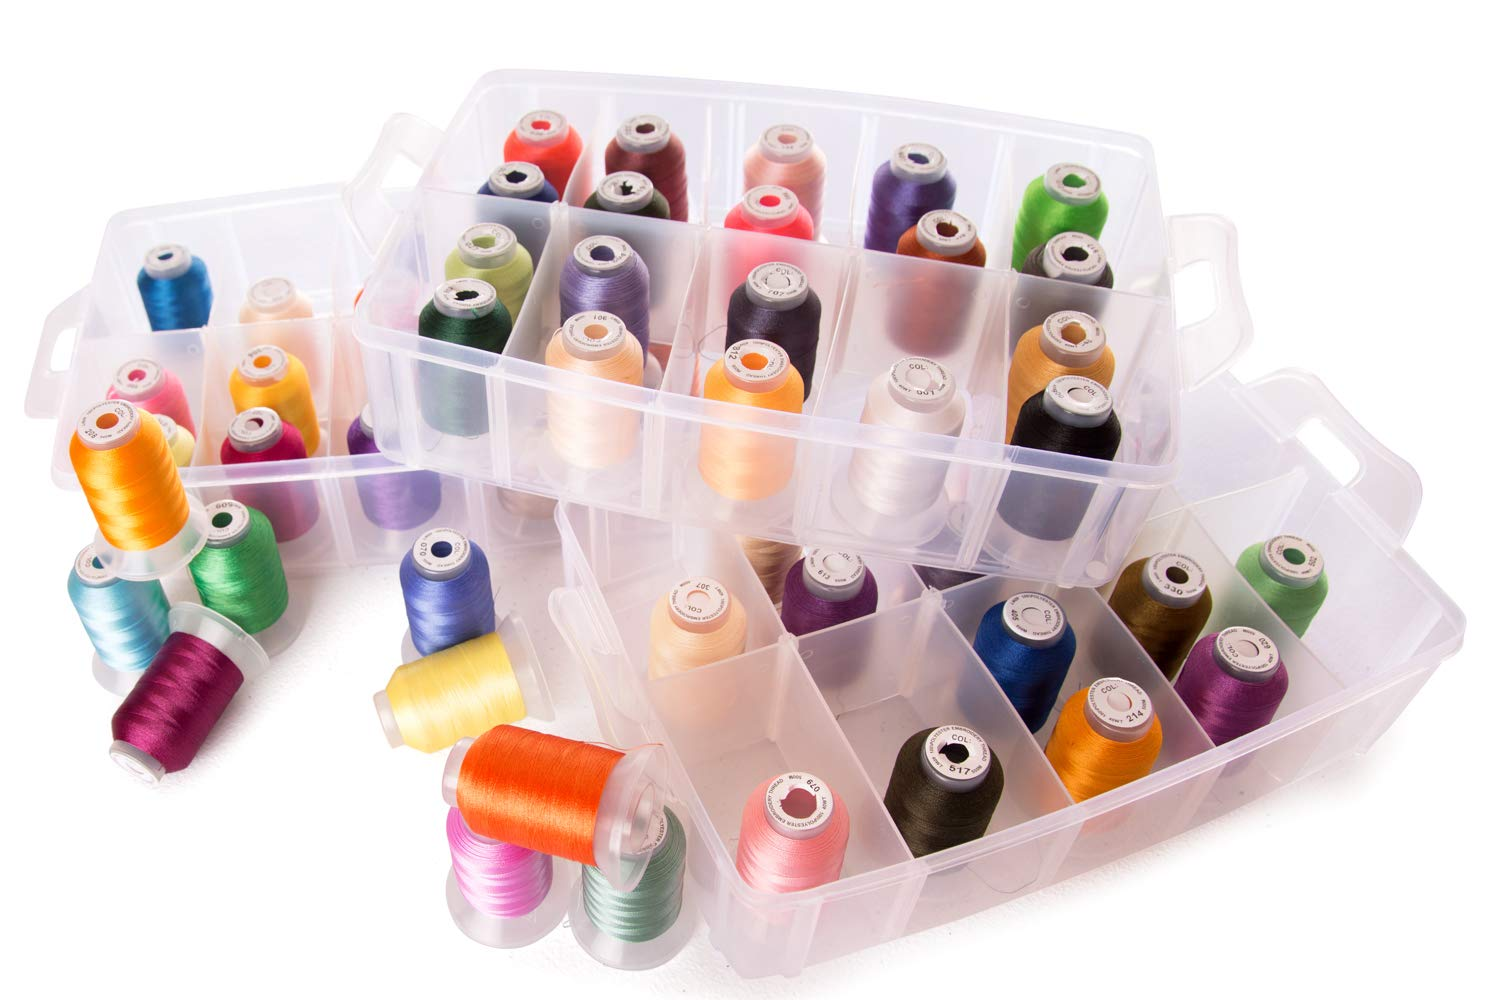 60 Spools Polyester Embroidery Machine Thread & Storage Container by Embroidex